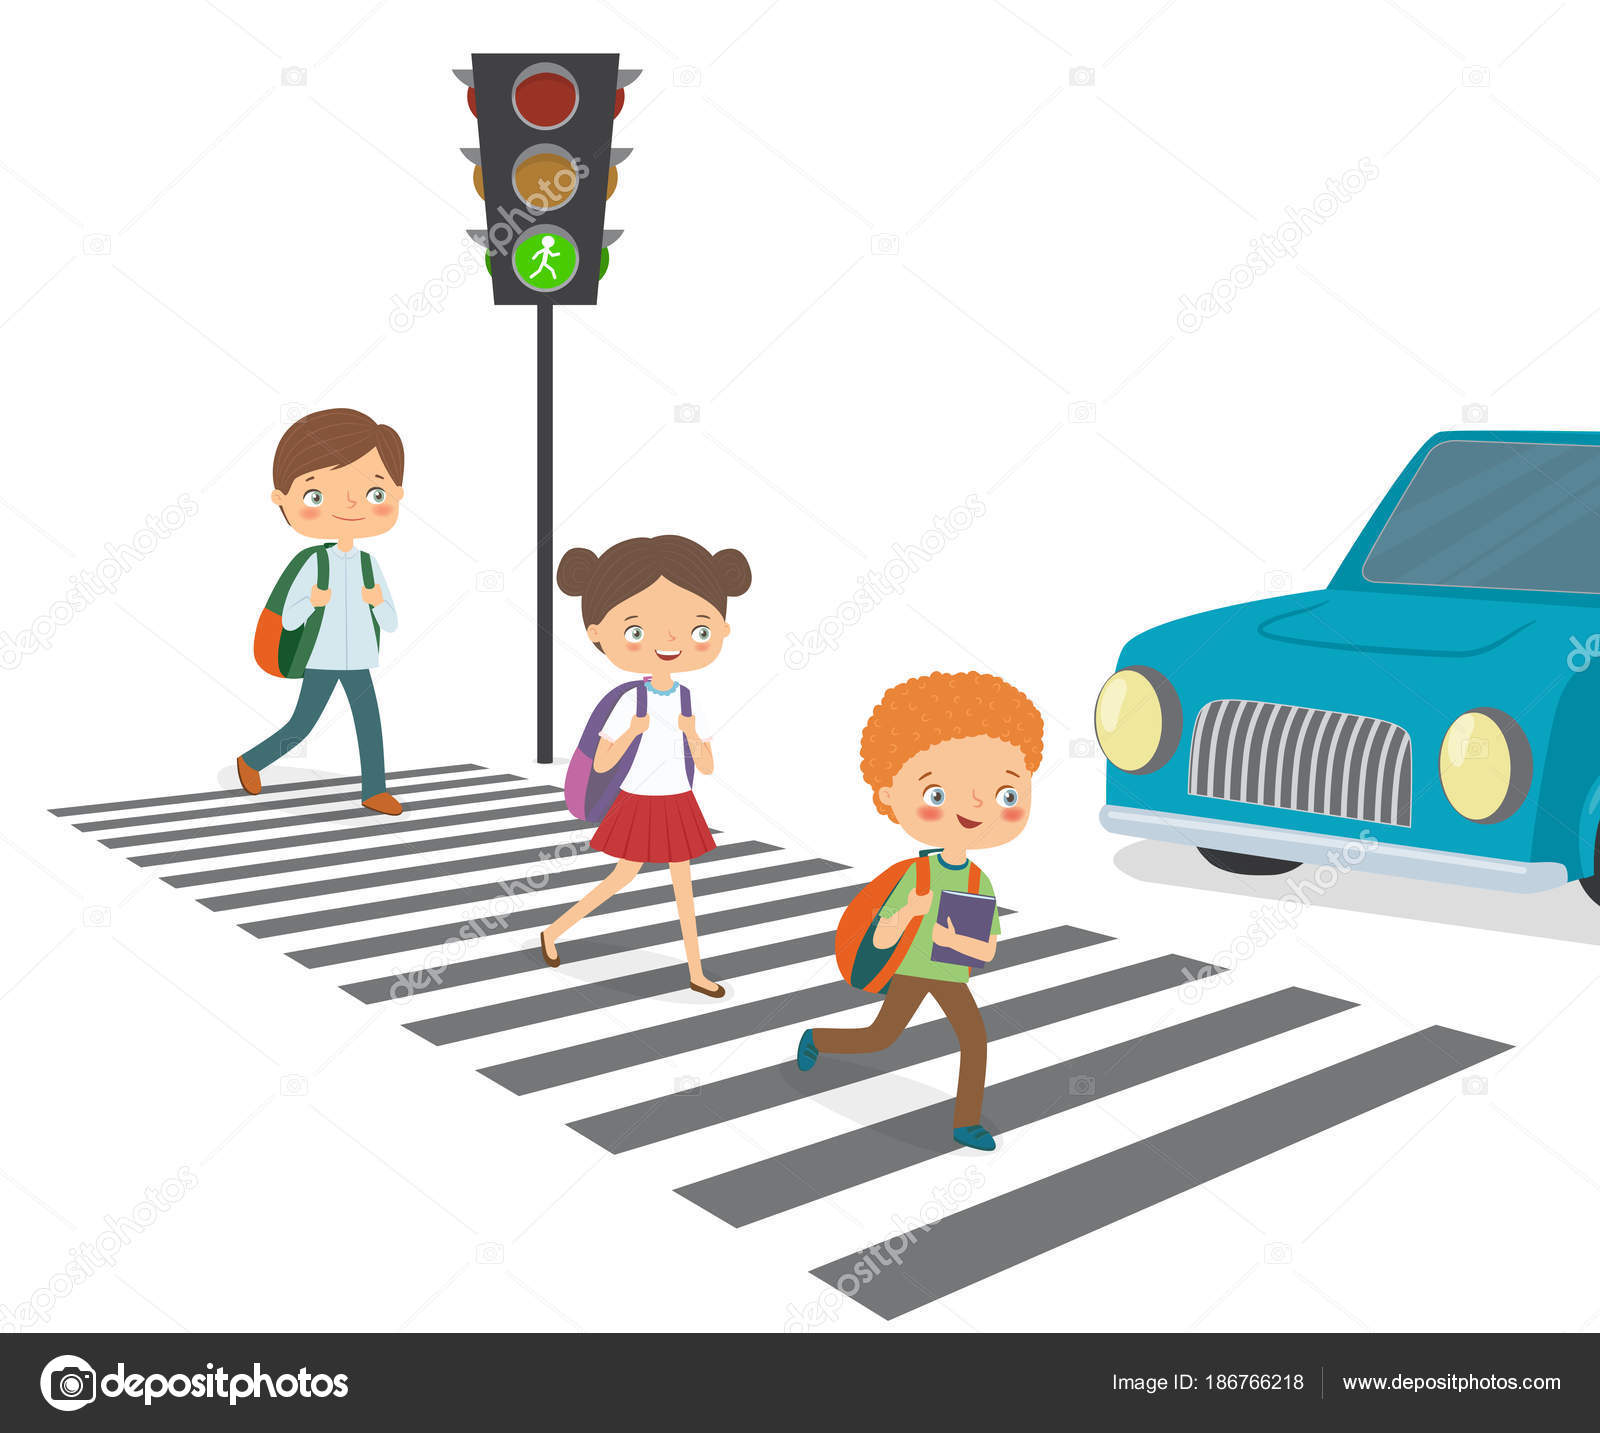 Road Crossing Clipart Children Cross The Road To A Green Traffic Light Stock